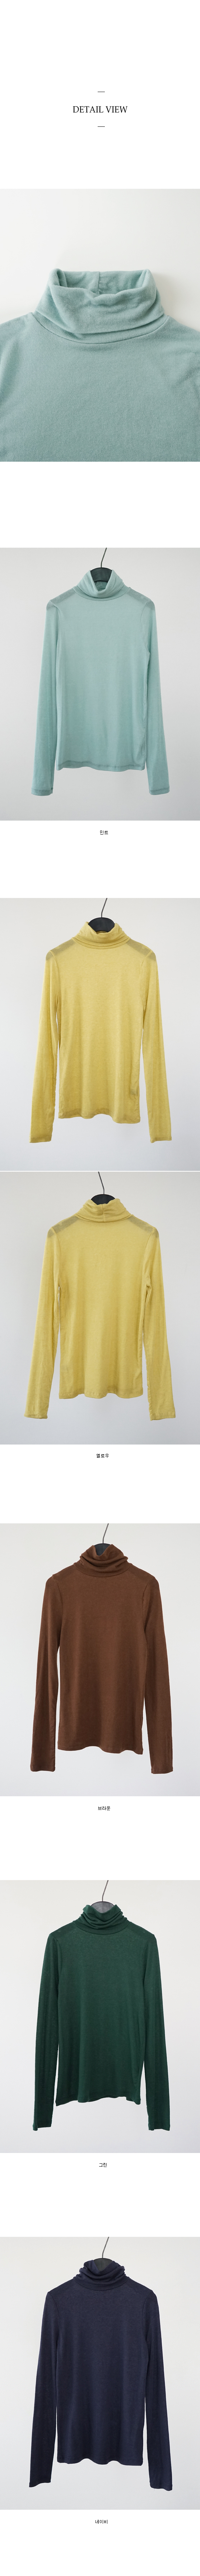 light wool turtle-neck top (5colors)